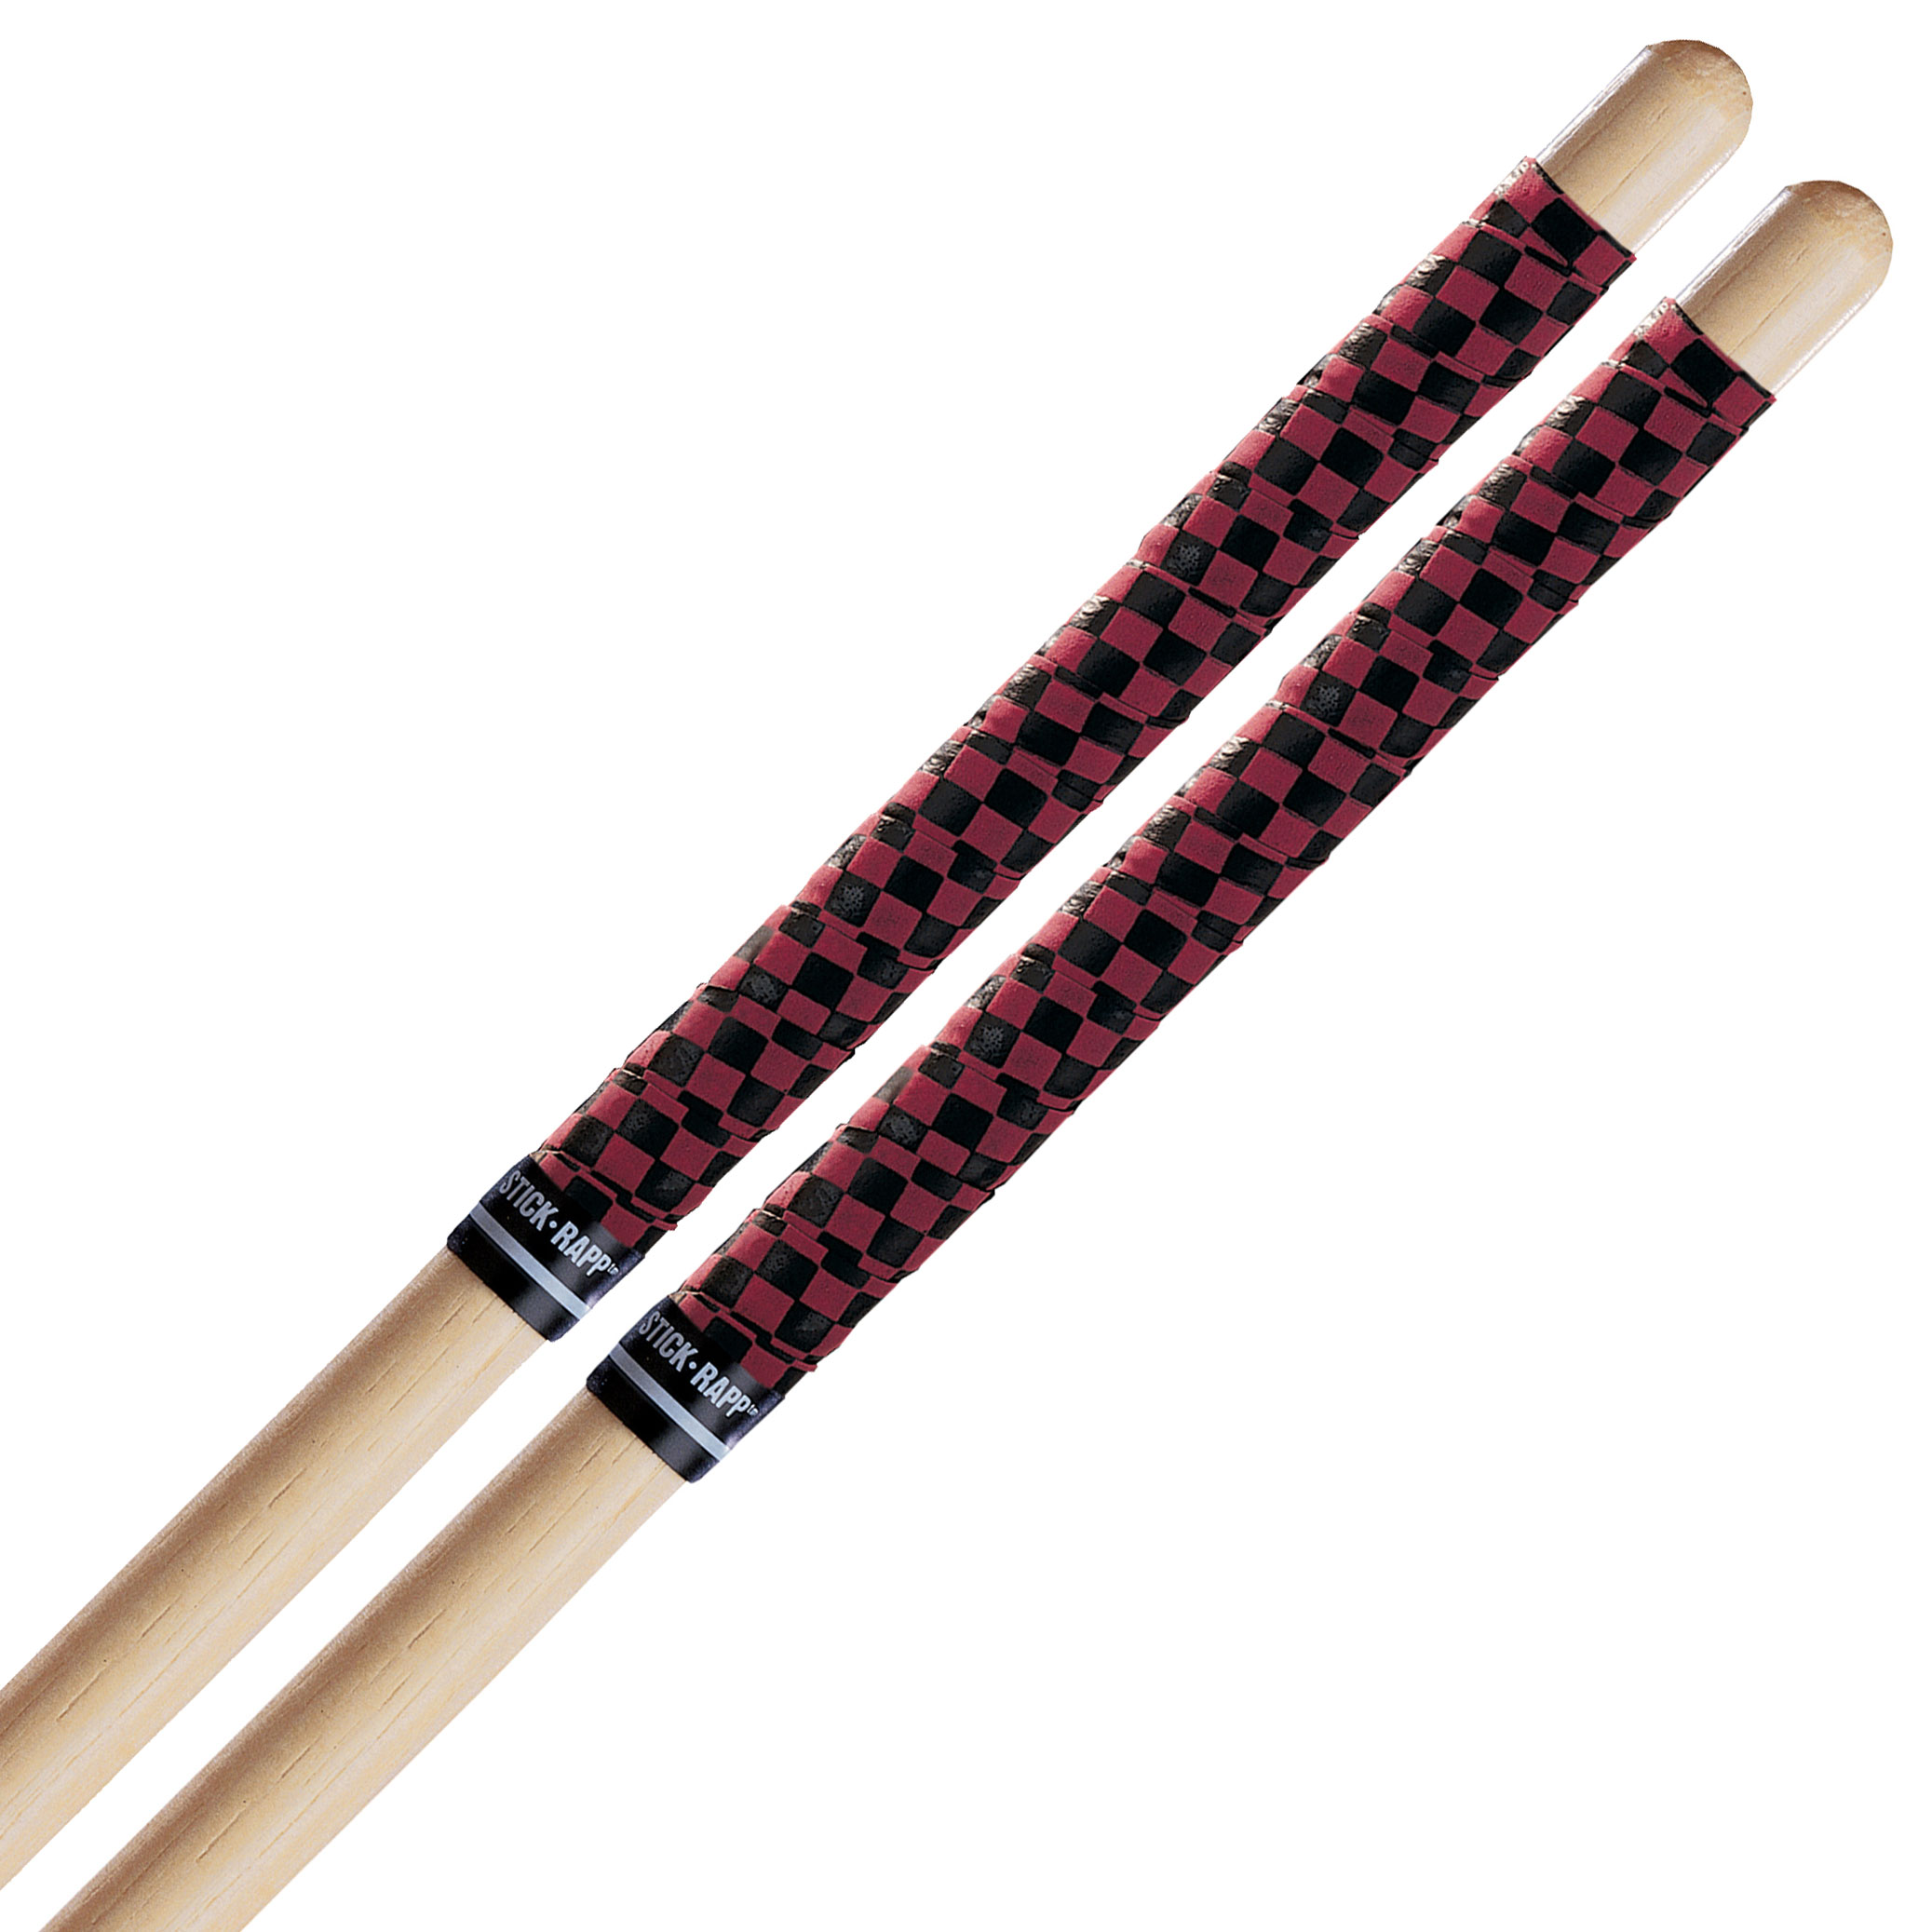 Promark Red & Black Checker Stick Rapp